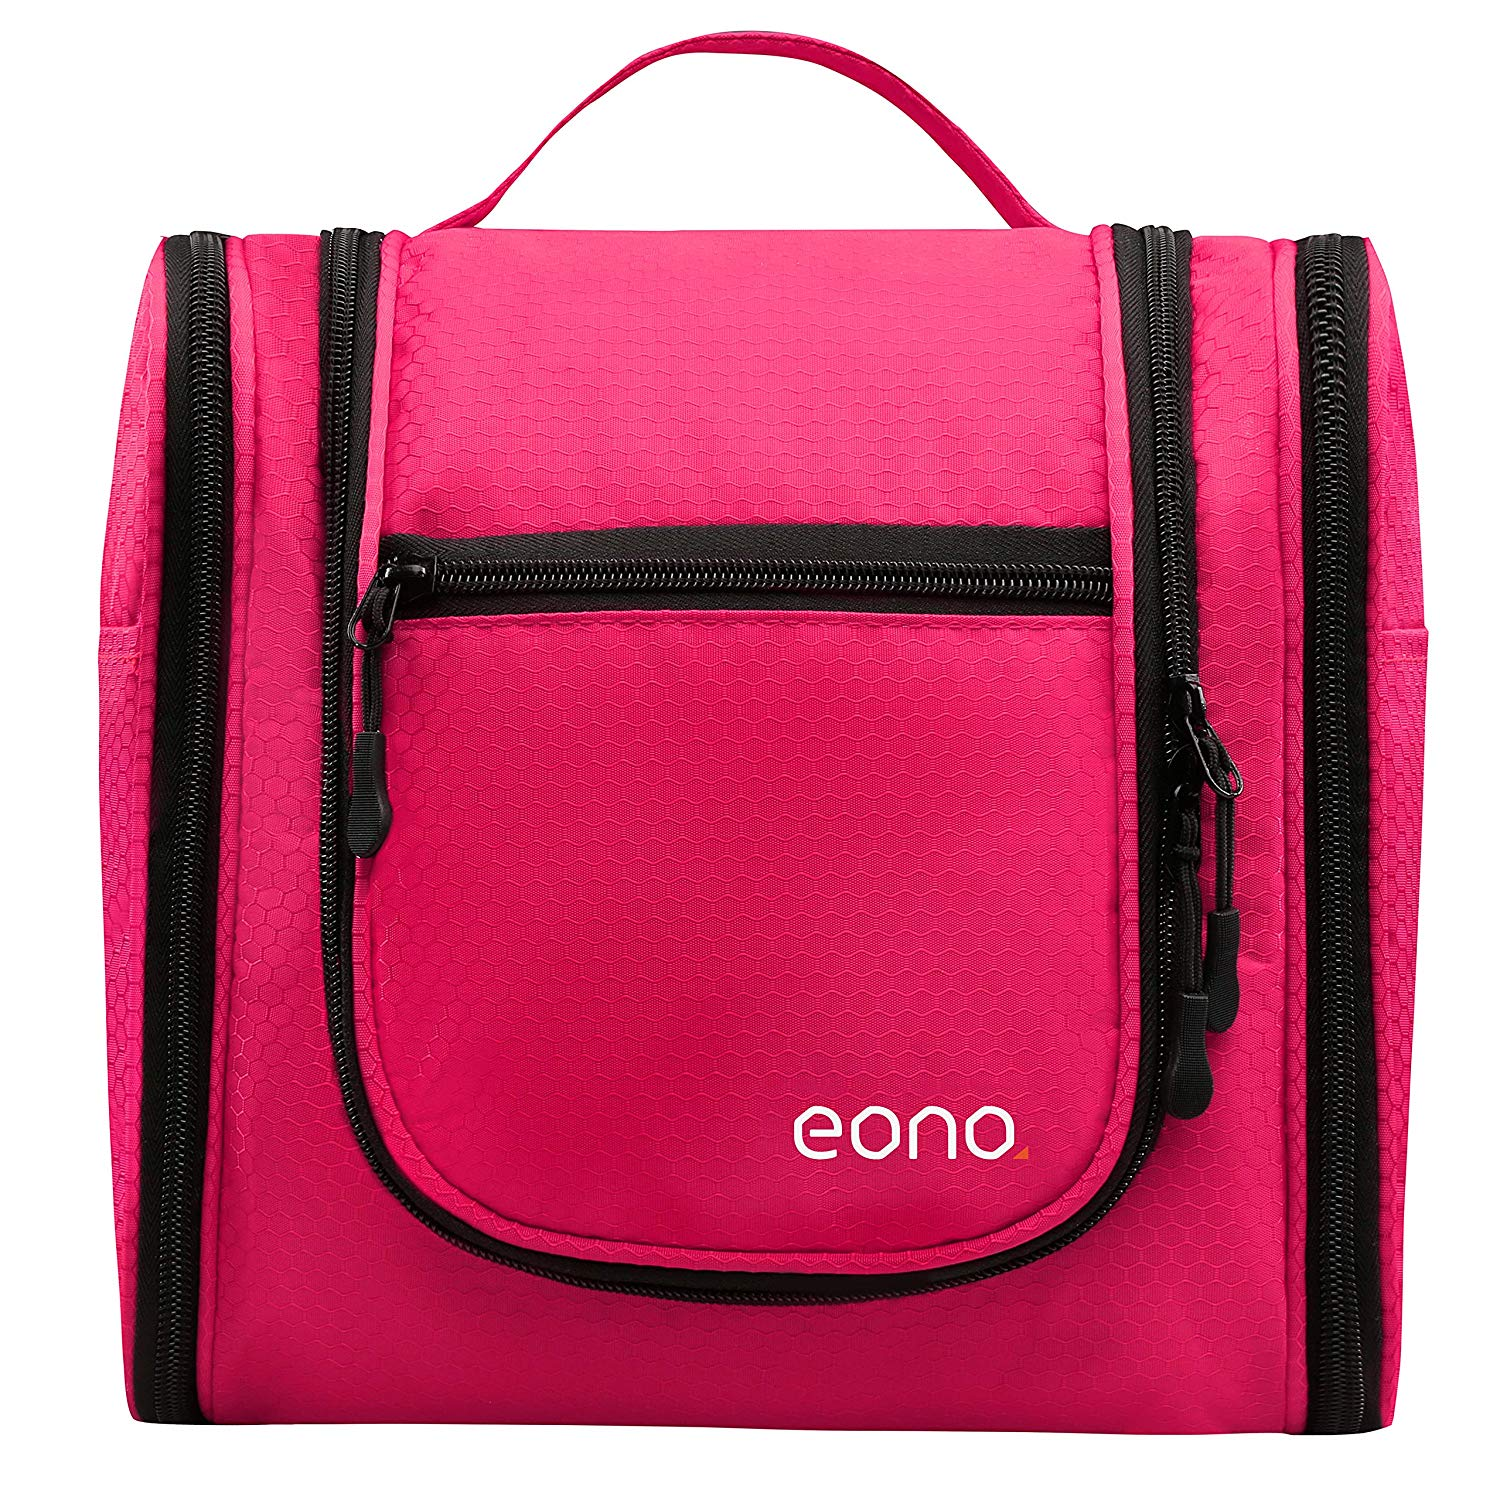 Eono Essentials Large Men & Women Toiletry Bag for Makeup, Cosmetic, Shaving, Travel Accessories, Personal Items - Hanging Toiletries Kit Makeup Organizer Fushcia